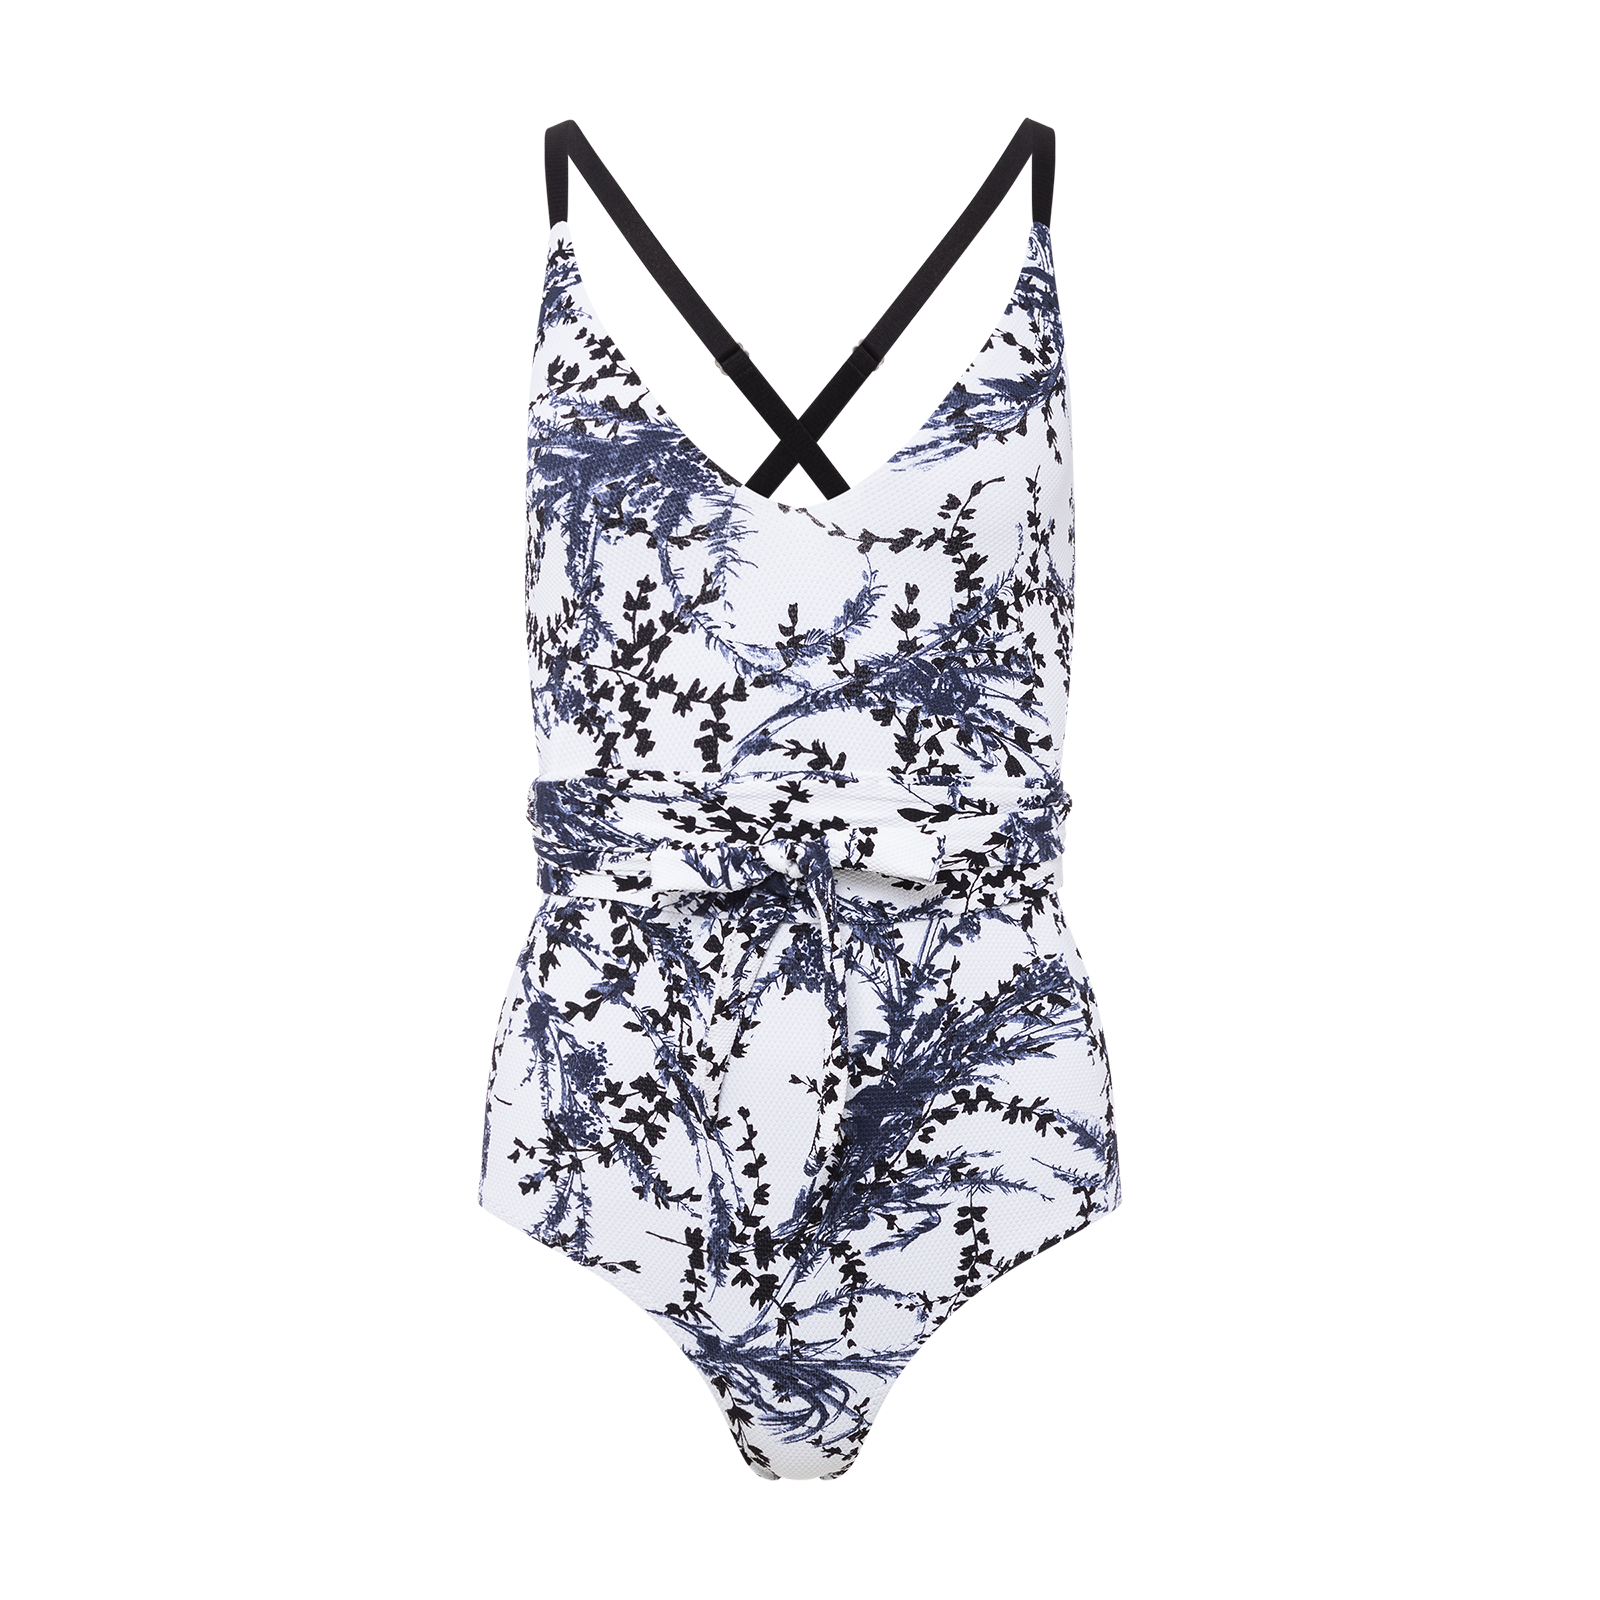 Swimsuit product picture